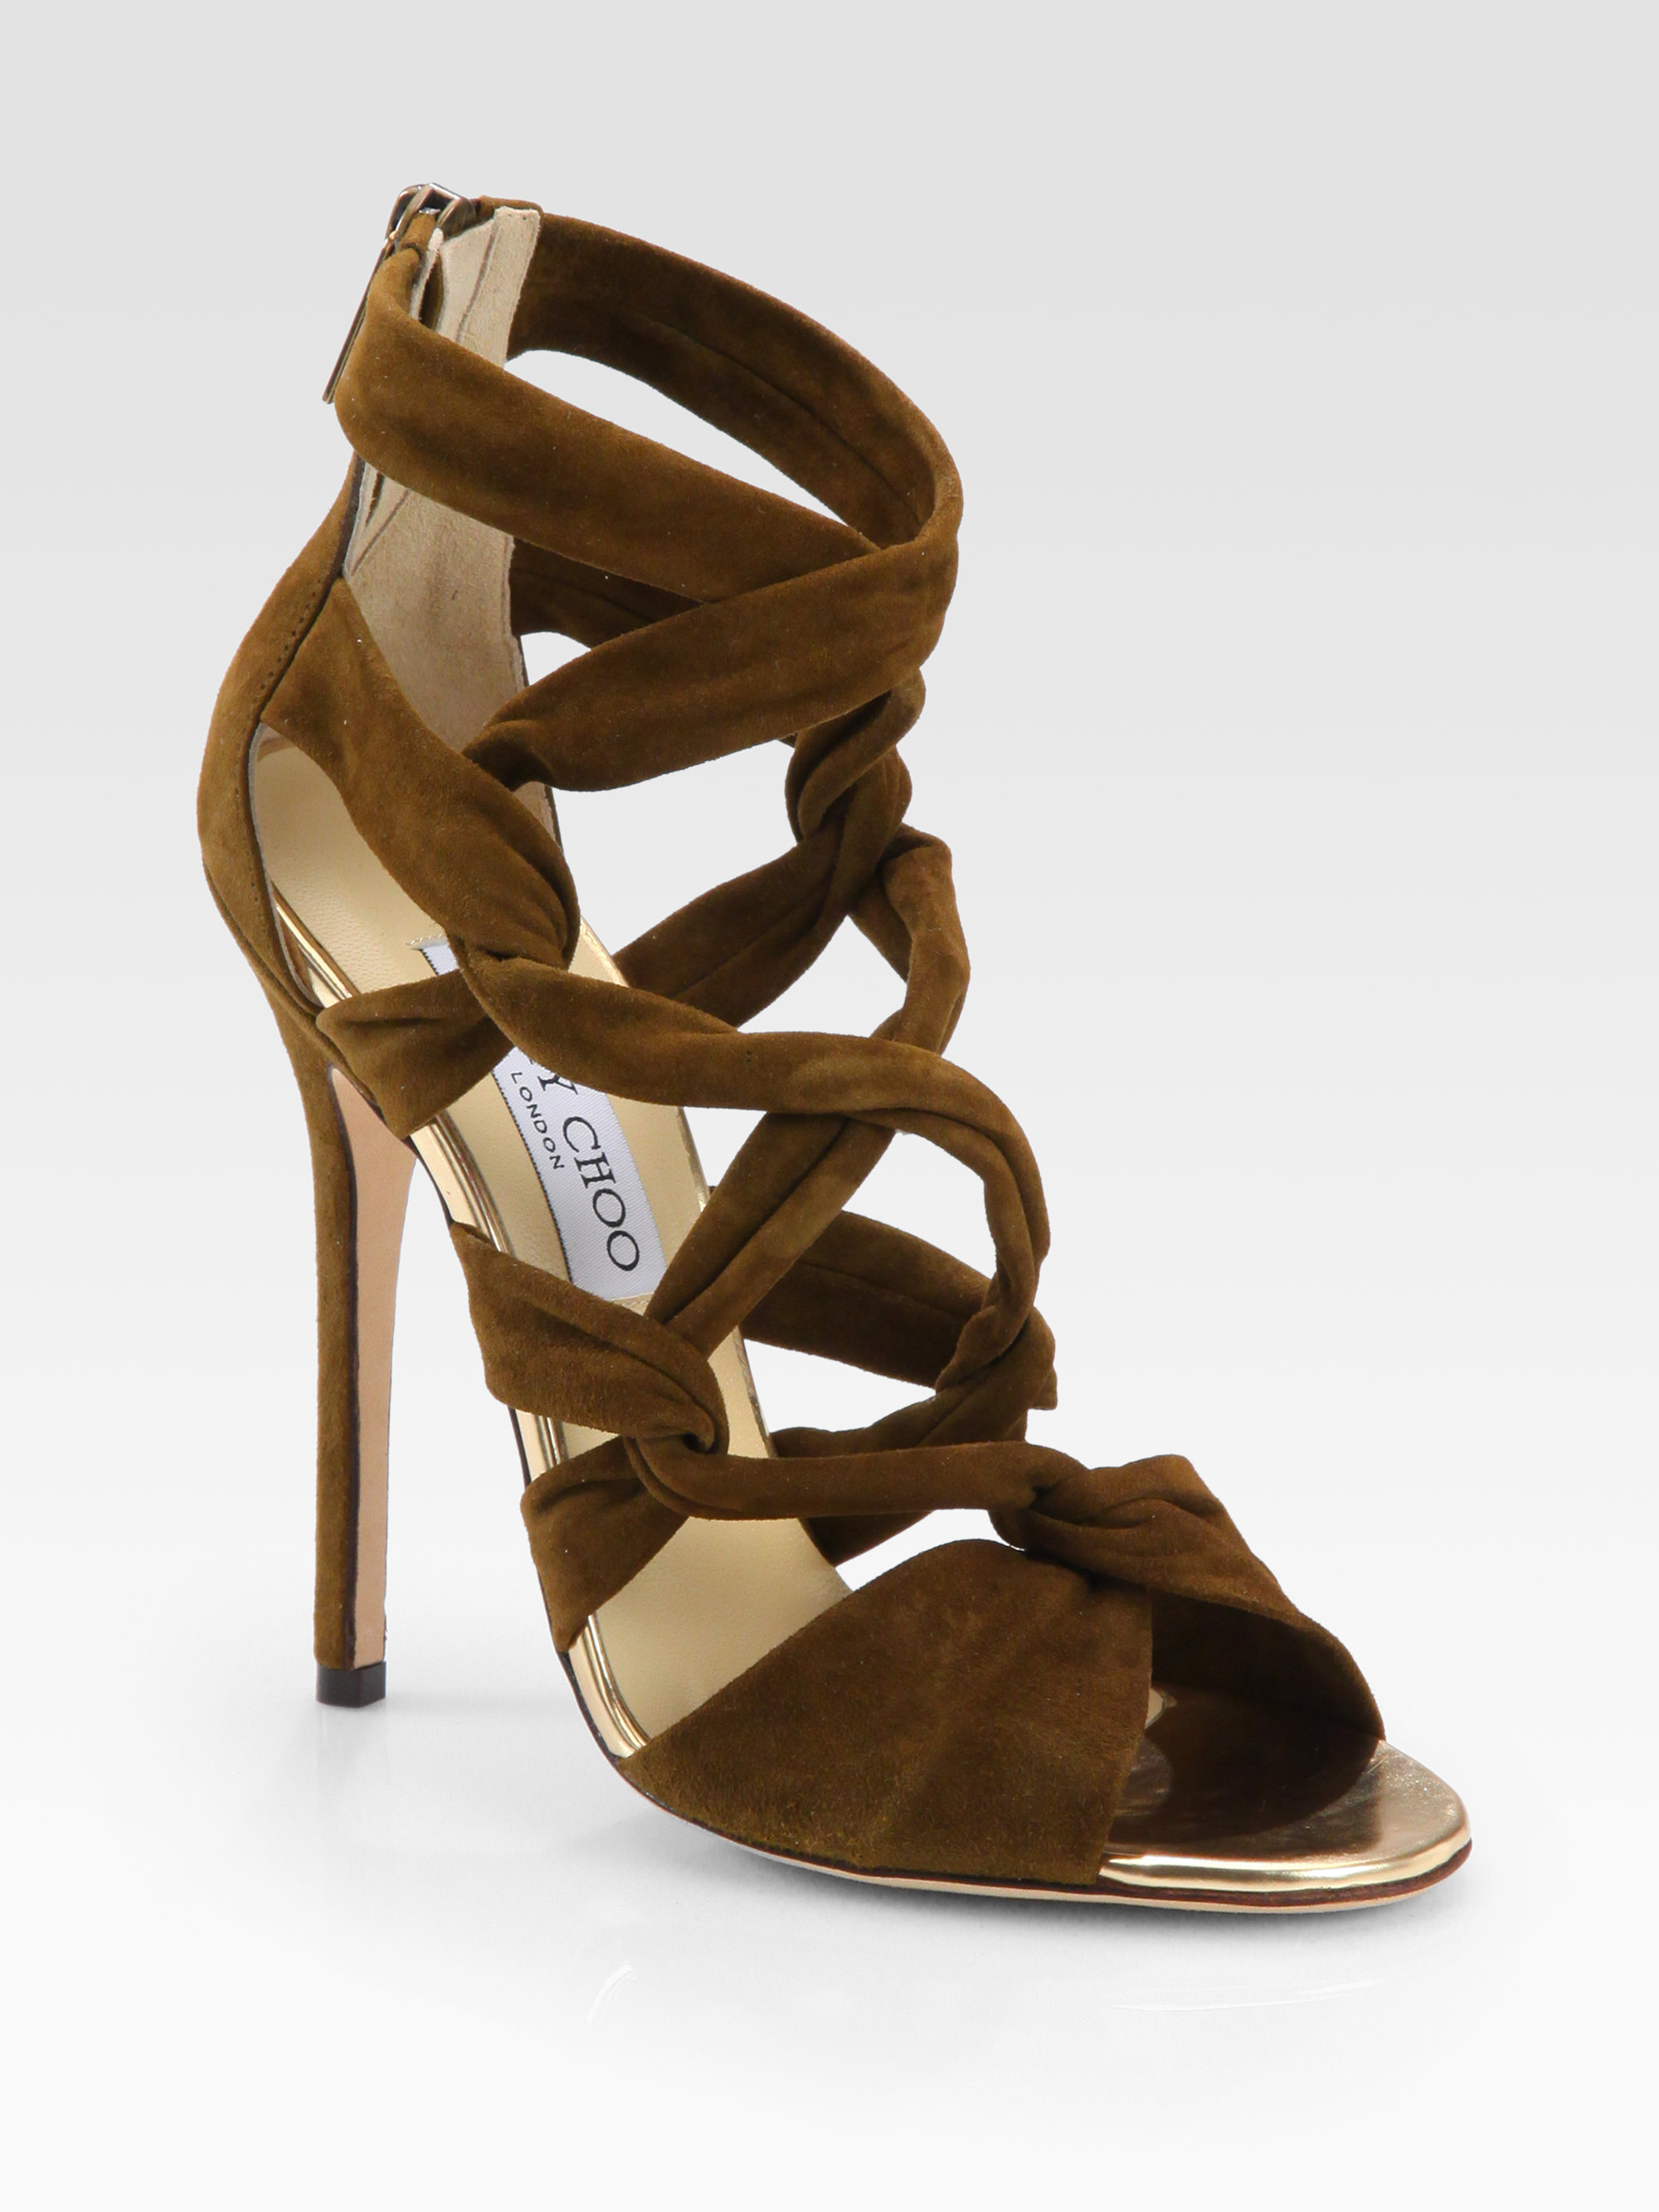 518f880687a Lyst - Jimmy Choo Kemble Knotted Suede Sandals in Brown